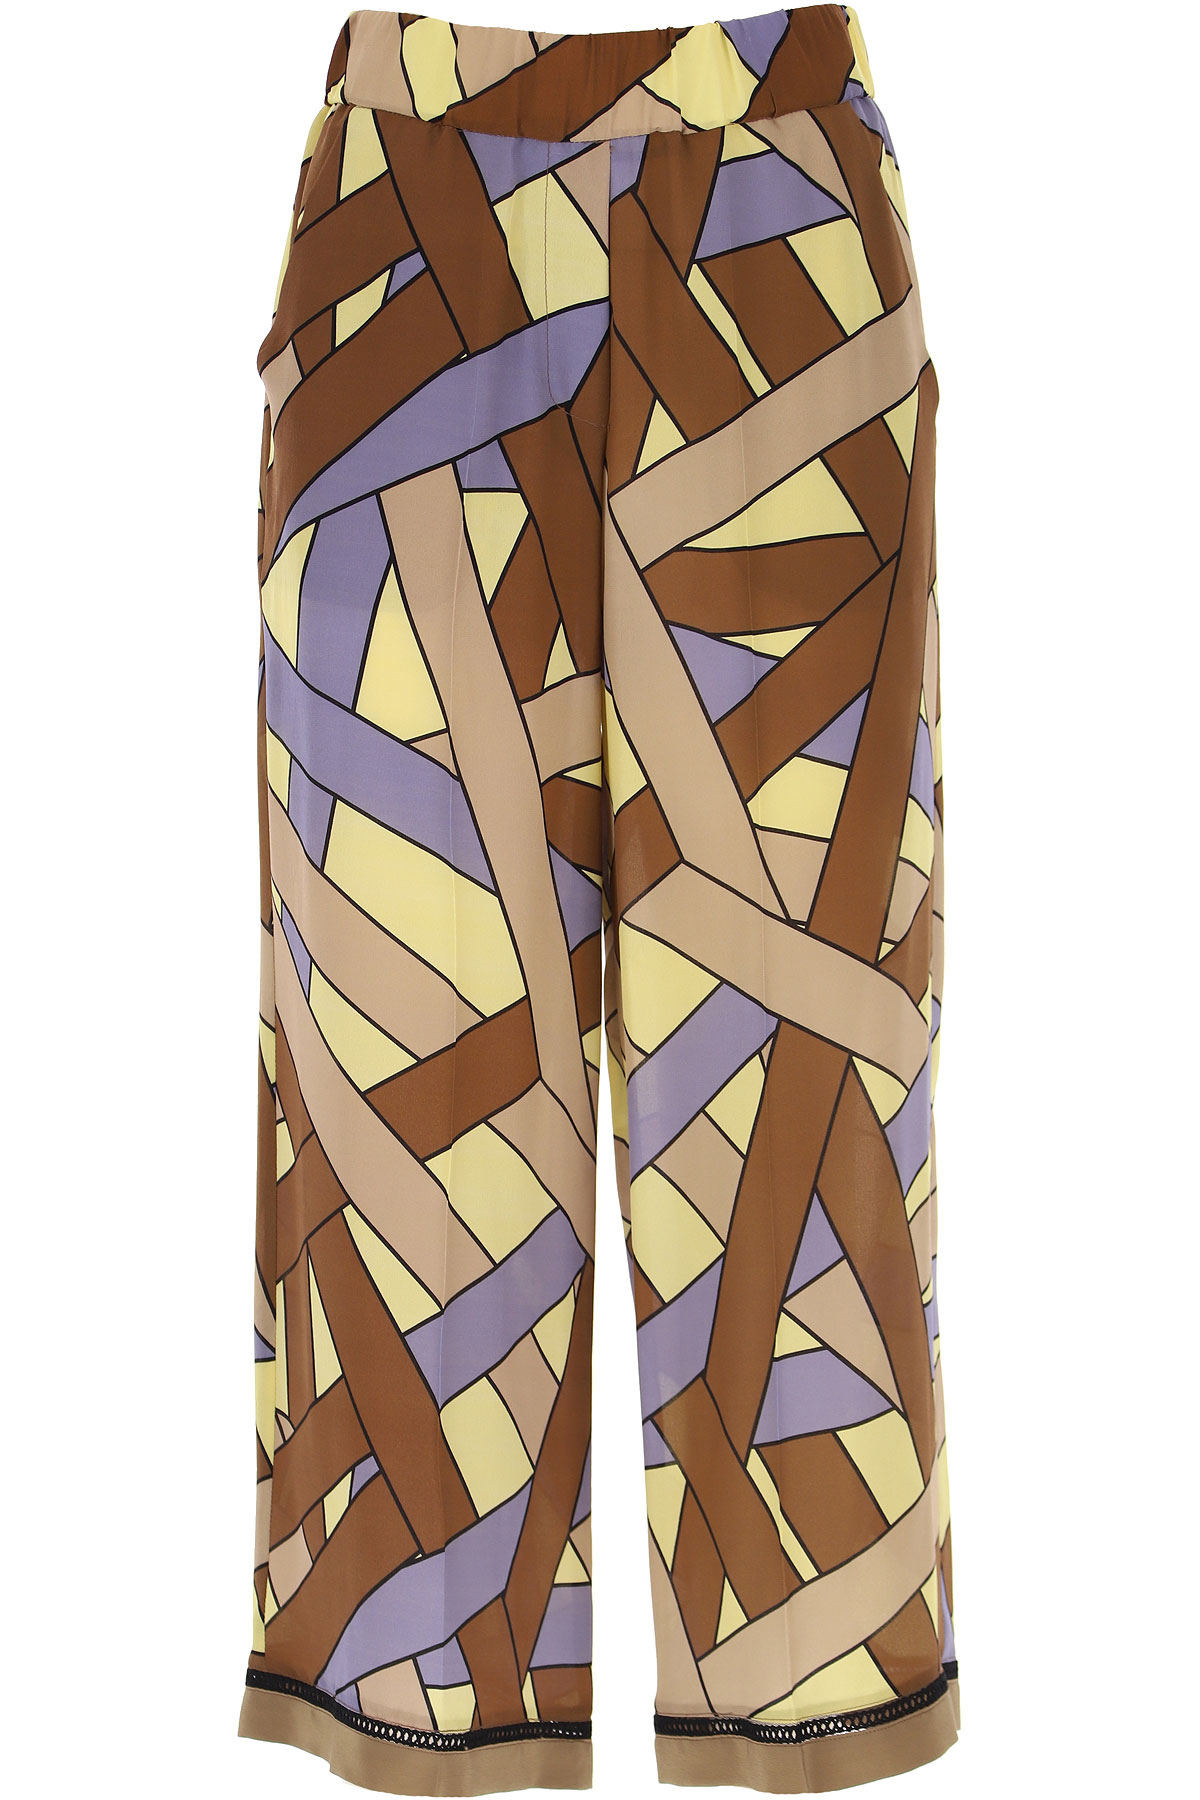 ALYSI Pants for Women On Sale, Brown, Cotton, 2019, 26 28 30